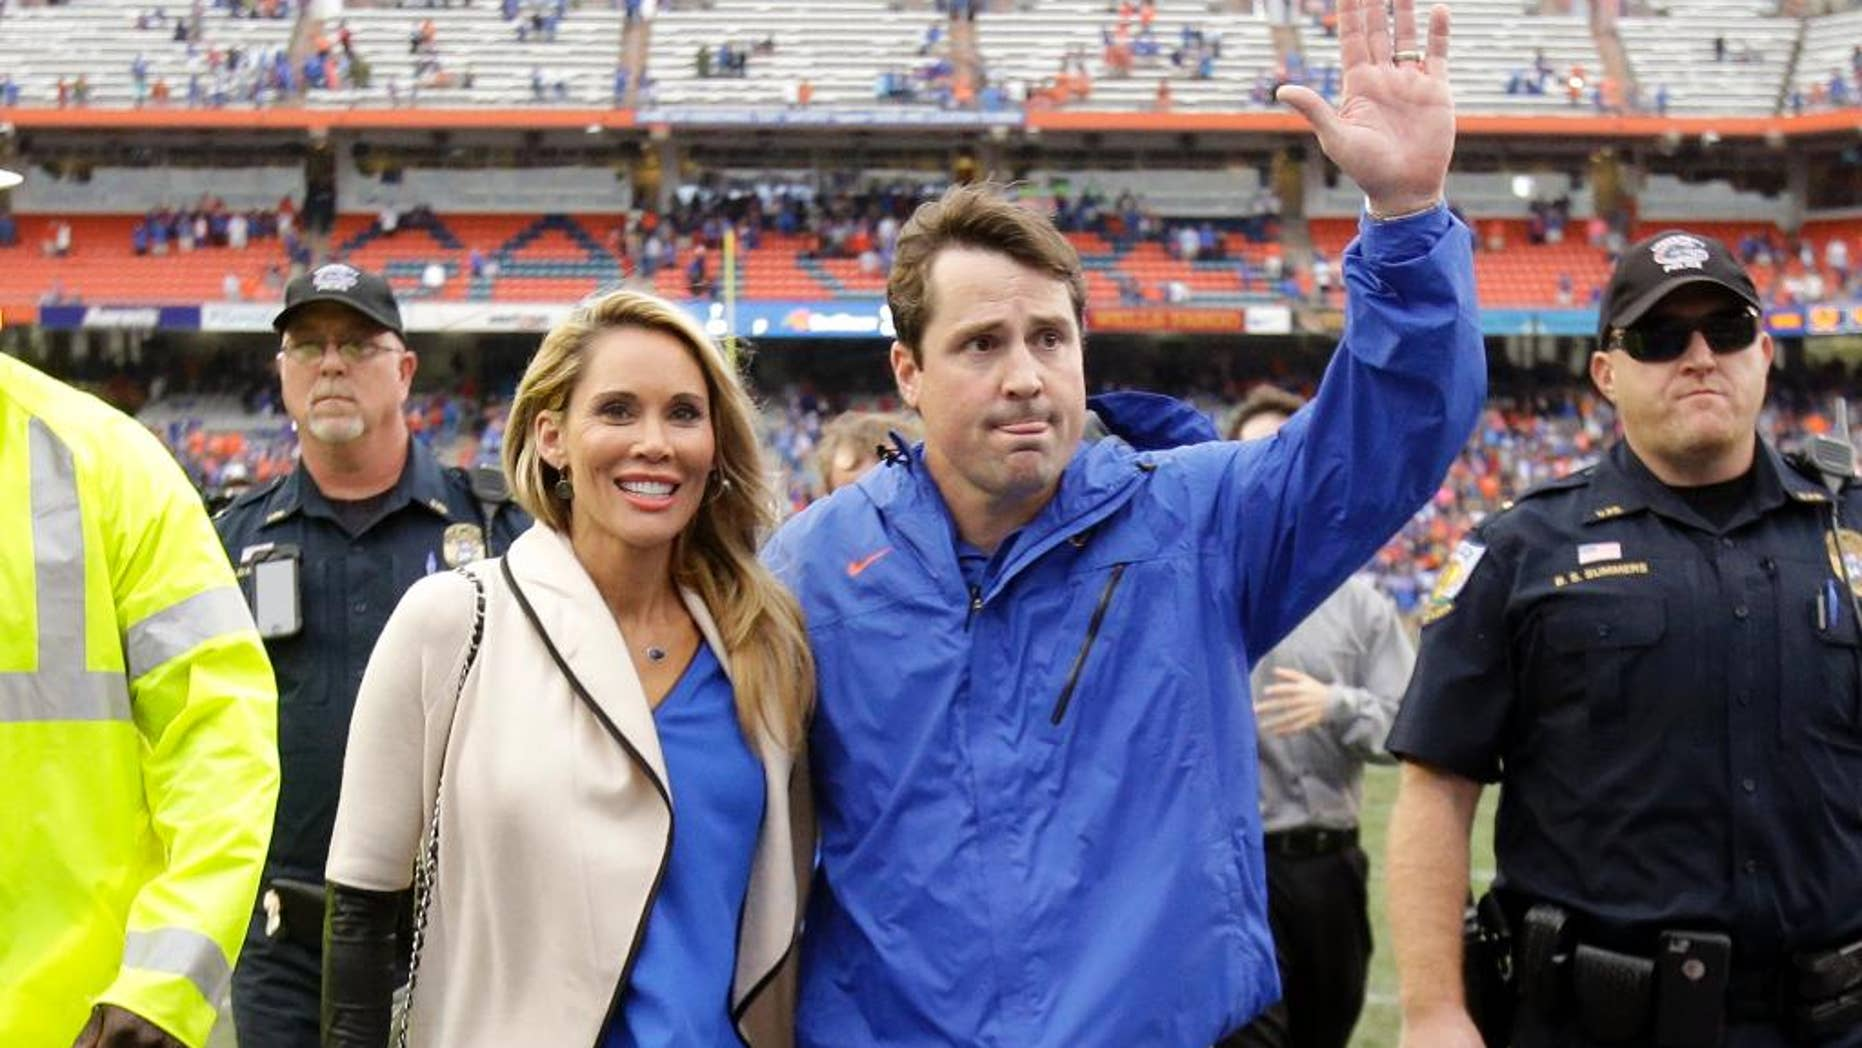 Florida head coach Will Muschamp, right, waves to cheering fans as he leaves the field with his wife Carol after an NCAA college football game against Eastern Kentucky in Gainesville, Fla., Saturday, Nov. 22, 2014.  Florida won 52-3. Muschamp was fired earlier this week, but will finish the season with the team.  (AP Photo/John Raoux)